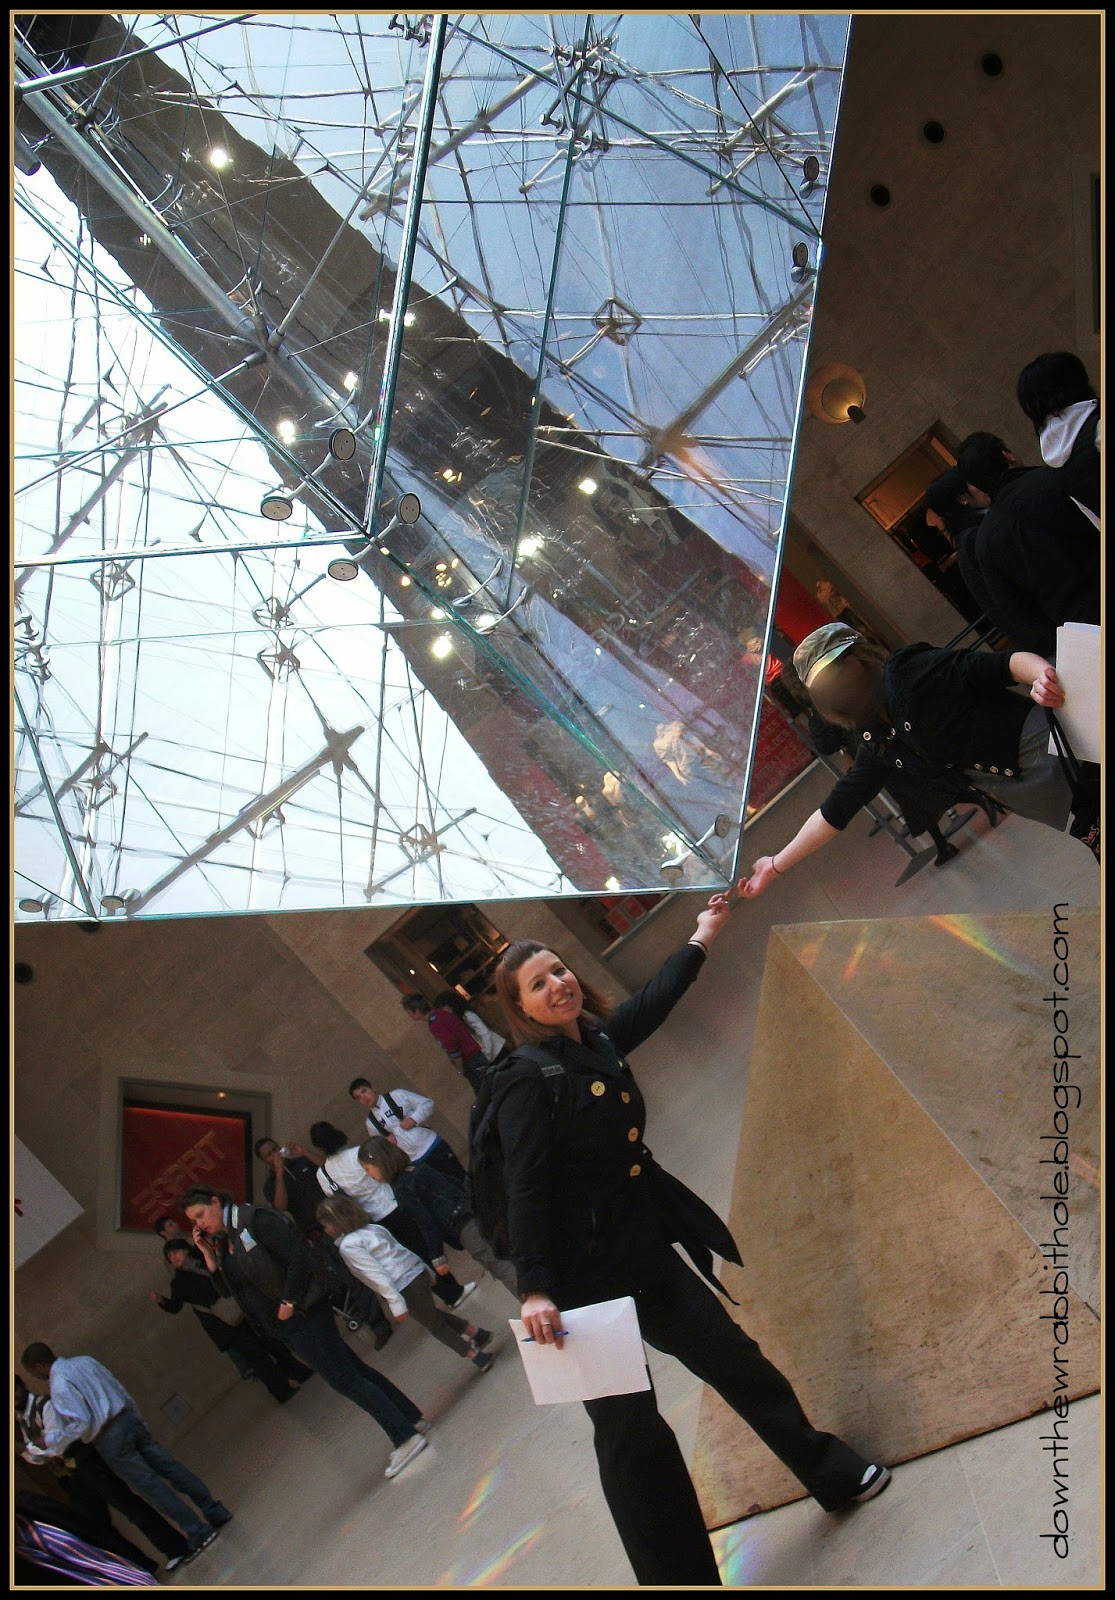 Louvre Museum, Paris France, French art, Da Vinci Code pyramid